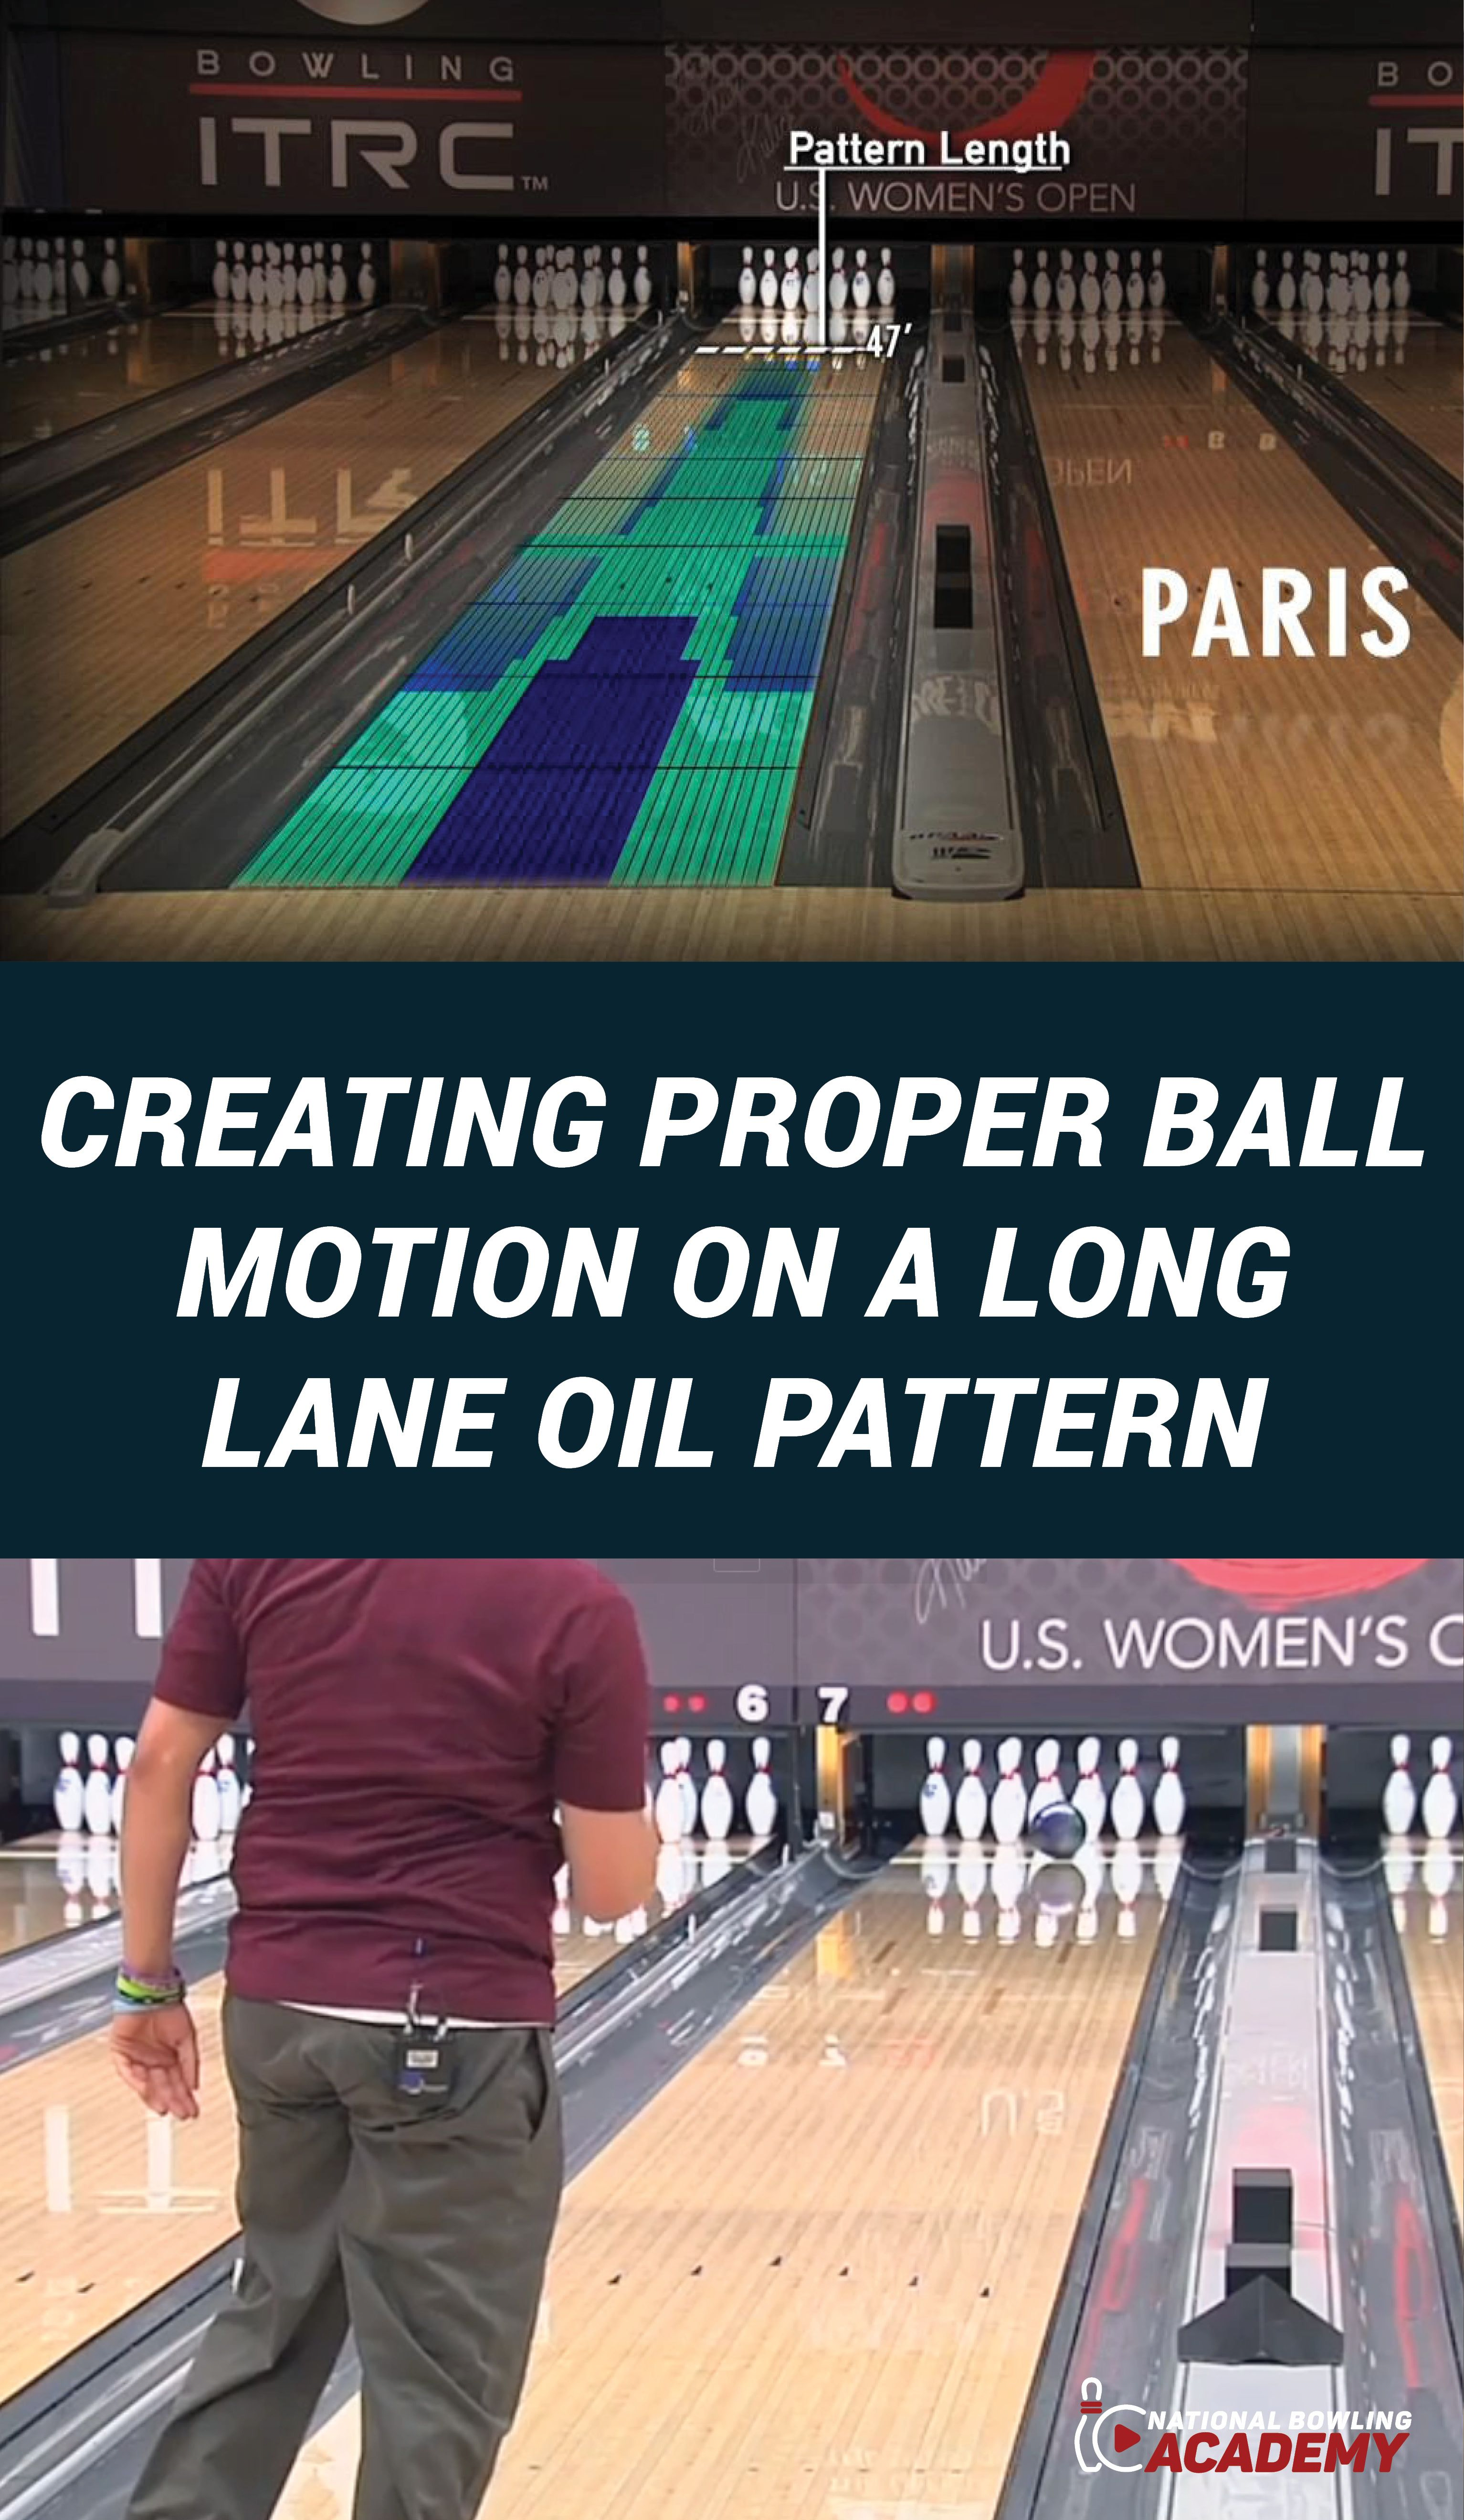 The Long Lane Oil Pattern Is Generally The Most Difficult Lane Condition To Play Especially When The Oil Is In Transition For Mos Bowling Bowling Tips Motion